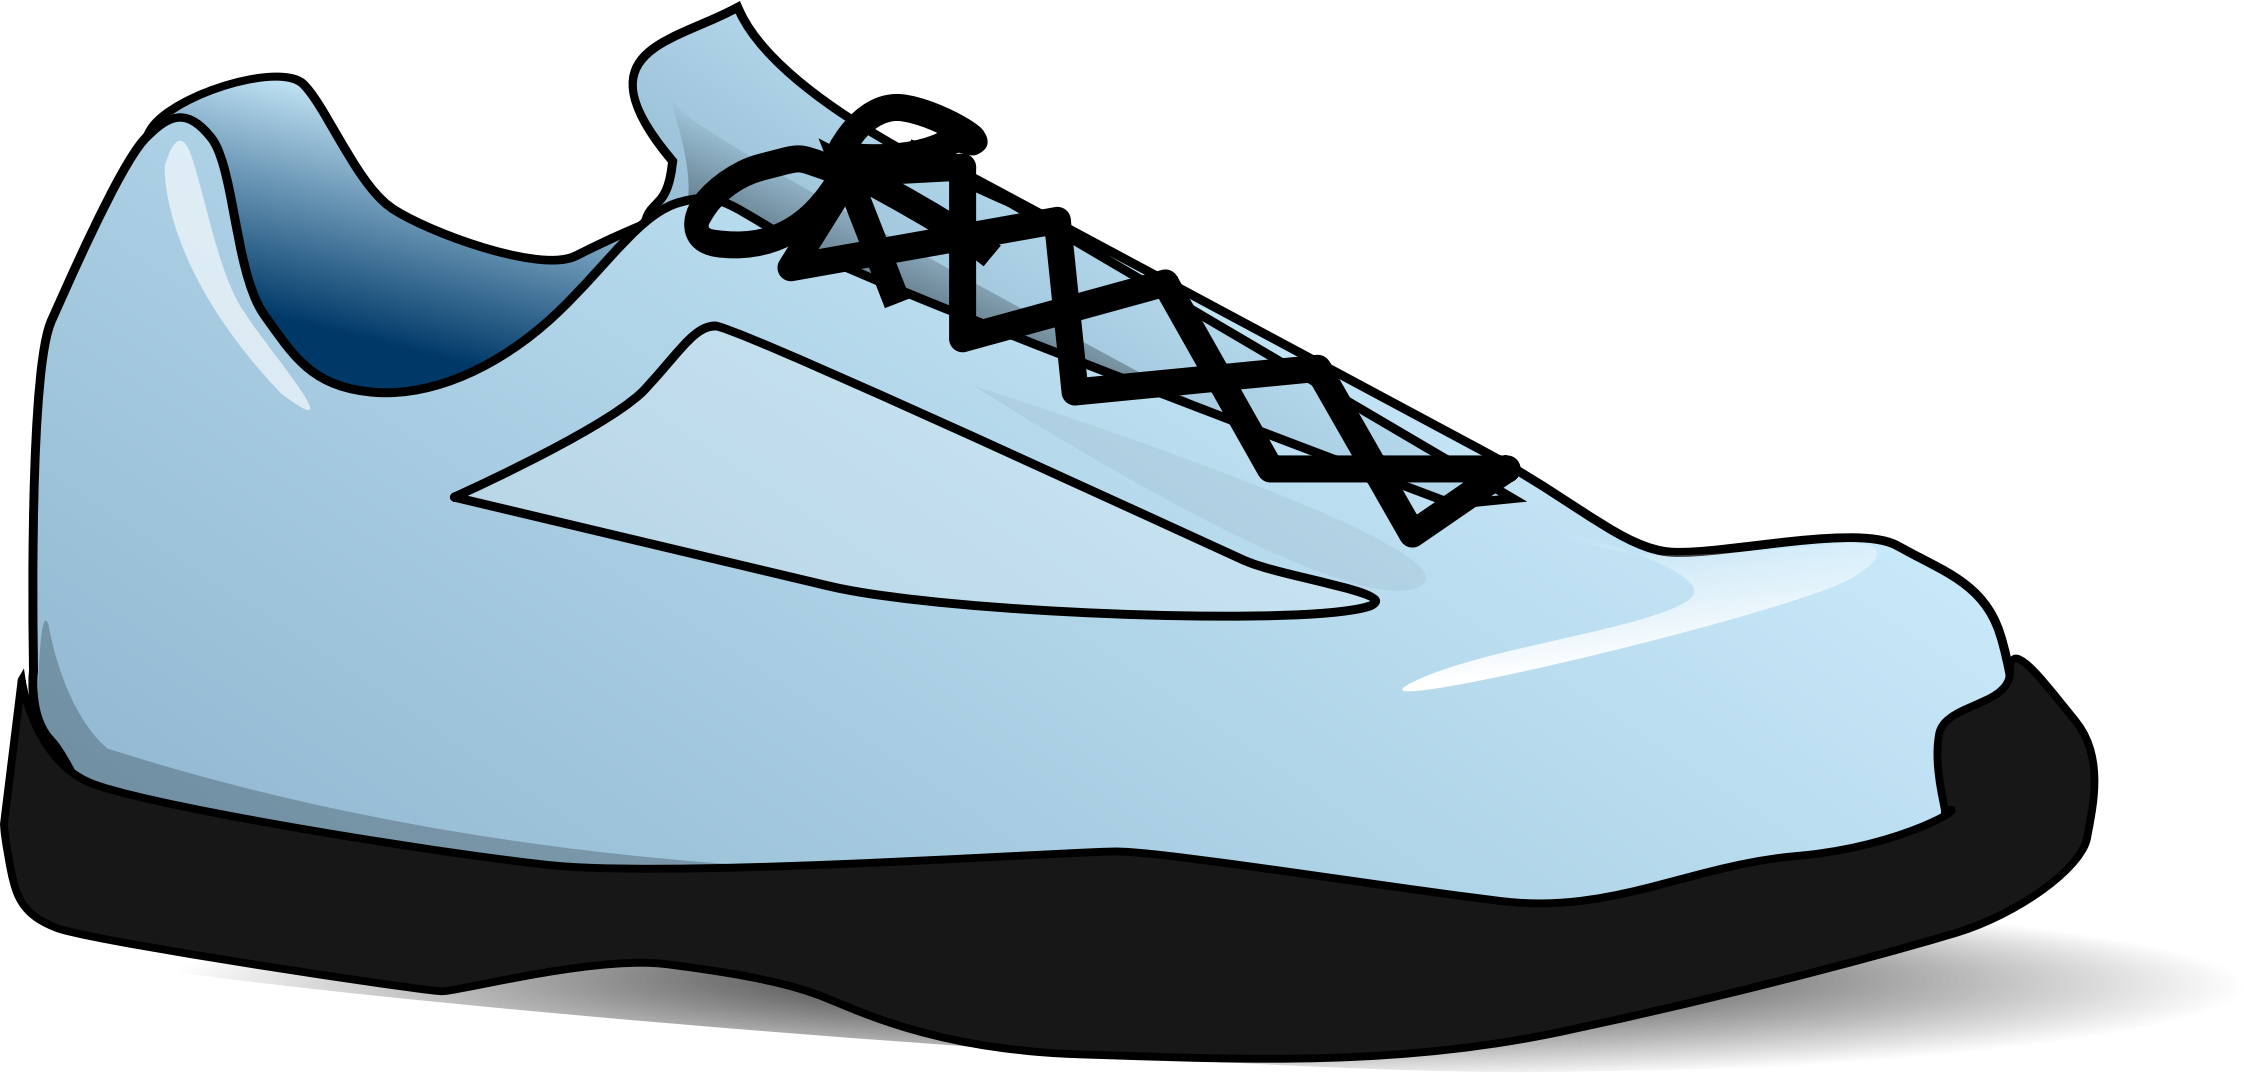 Nike basketball tennis shoe clipart image black and white download Nike Shoes Clipart at GetDrawings.com | Free for personal use Nike ... image black and white download